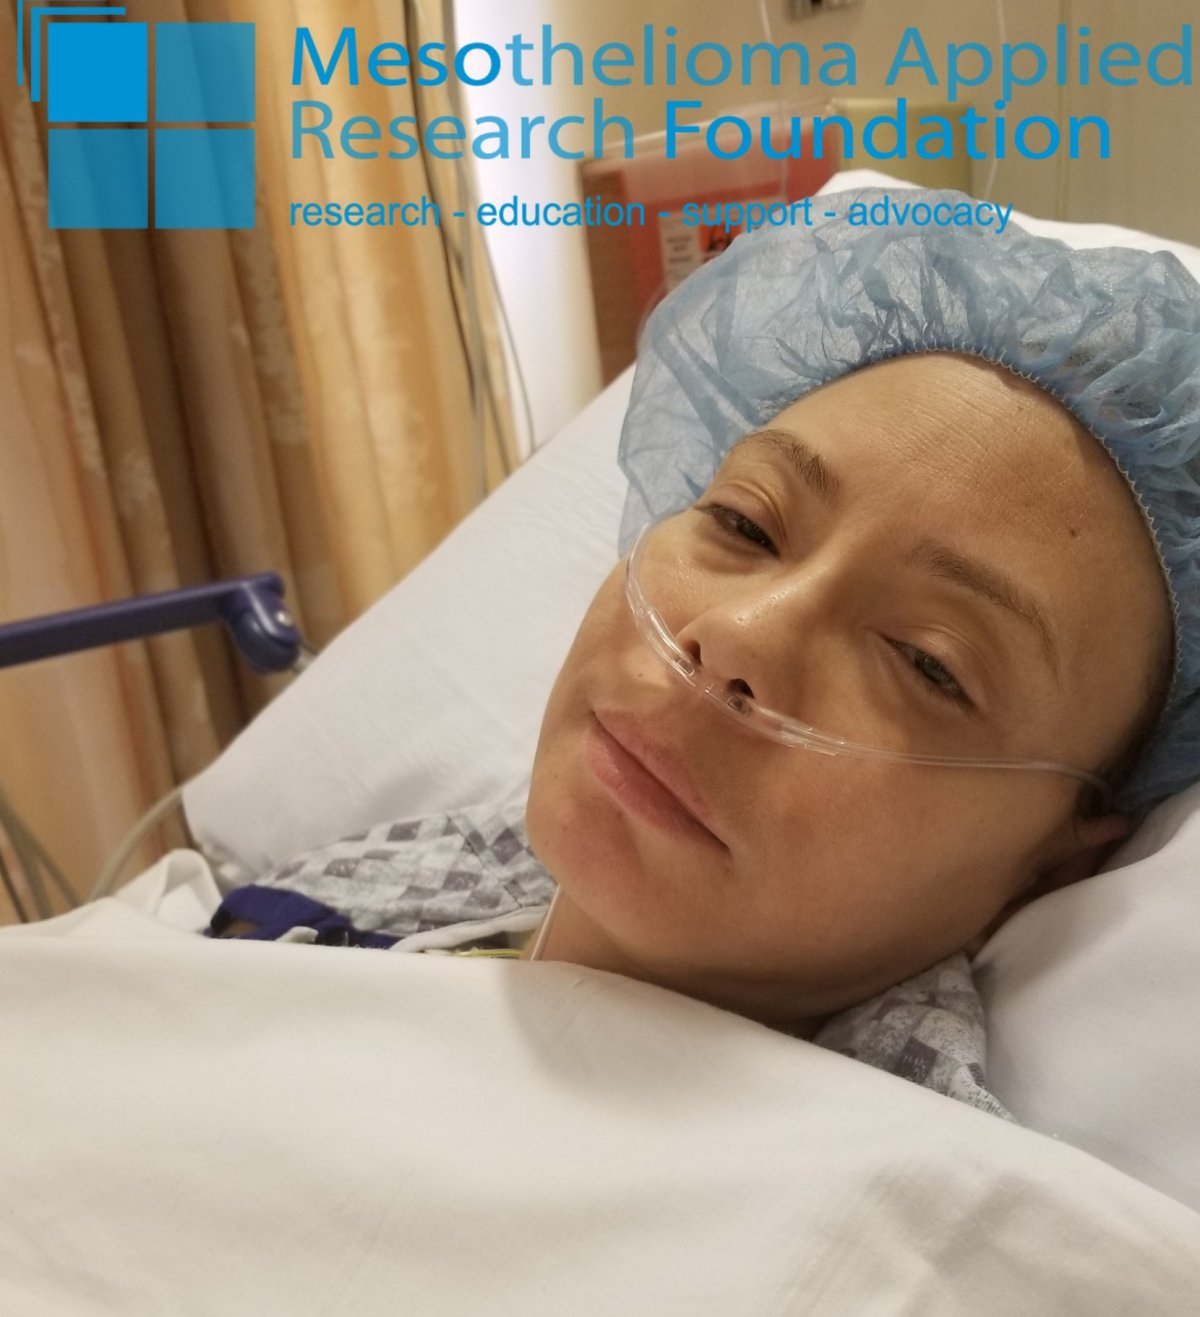 ANGIE'S FIGHT…. 2 SURGERY LATER AND SHE IS STILLFIGHTING.